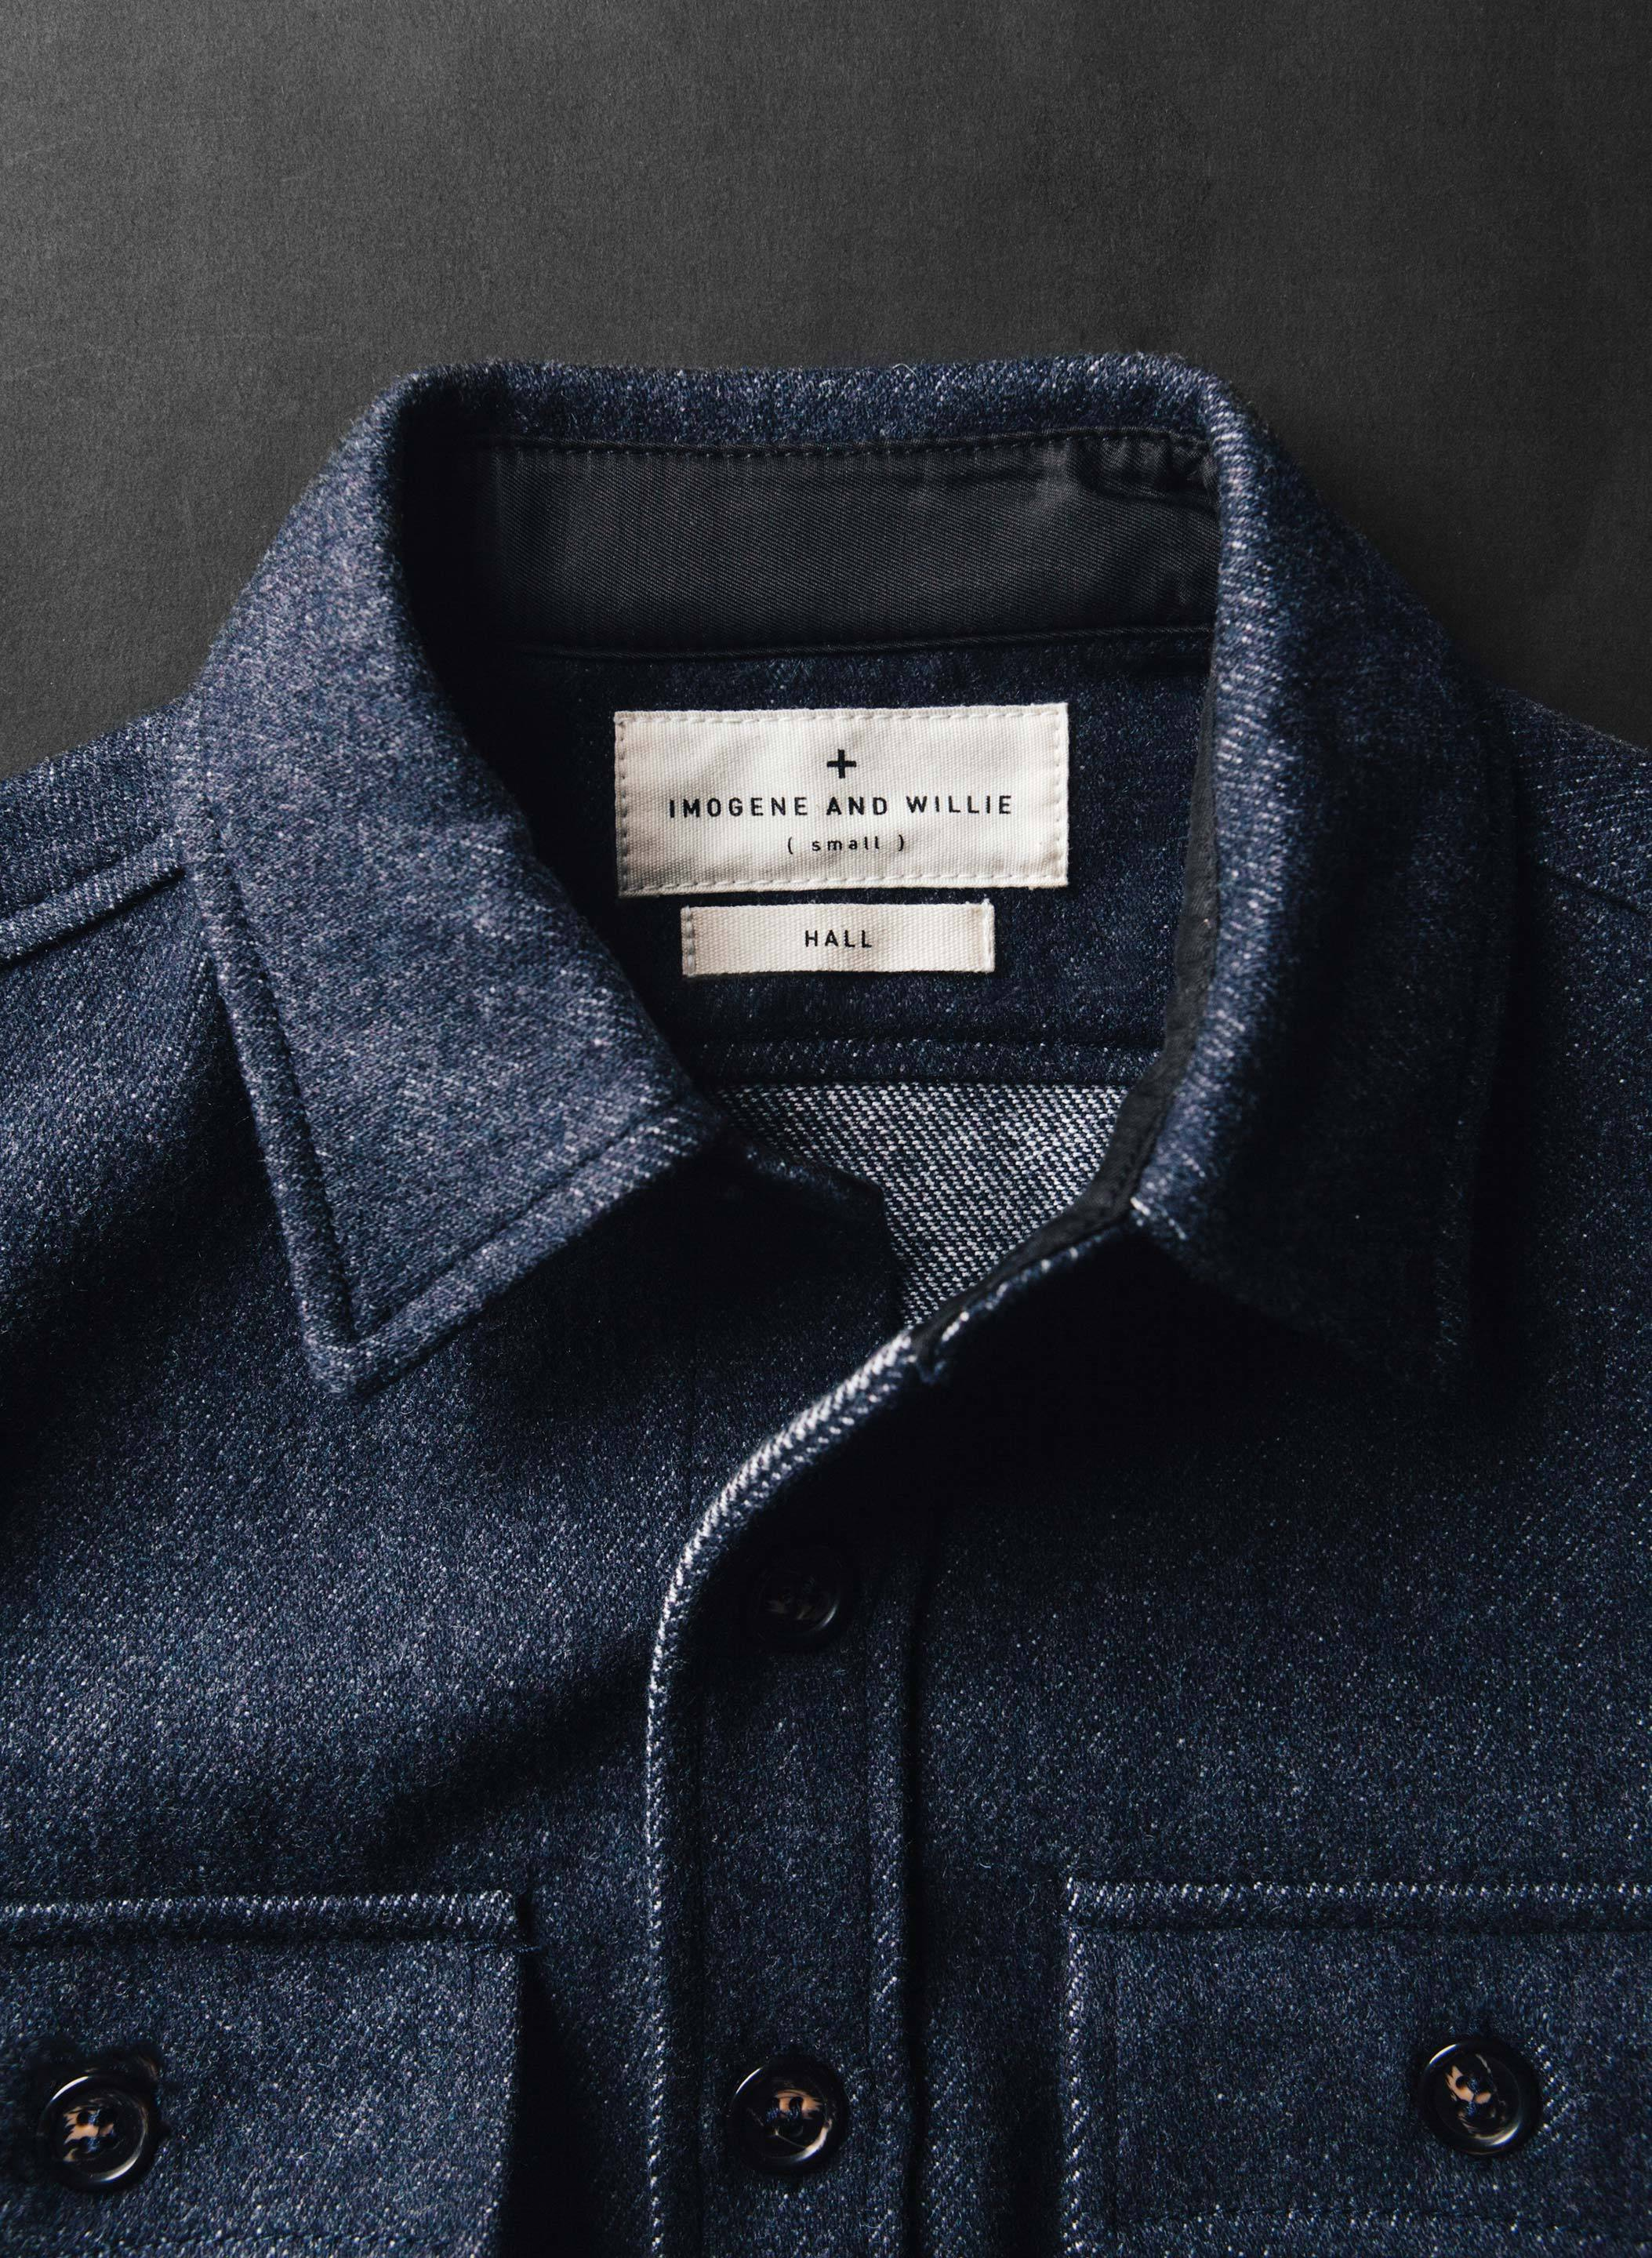 imogene + willie - hall cpo shirt in navy